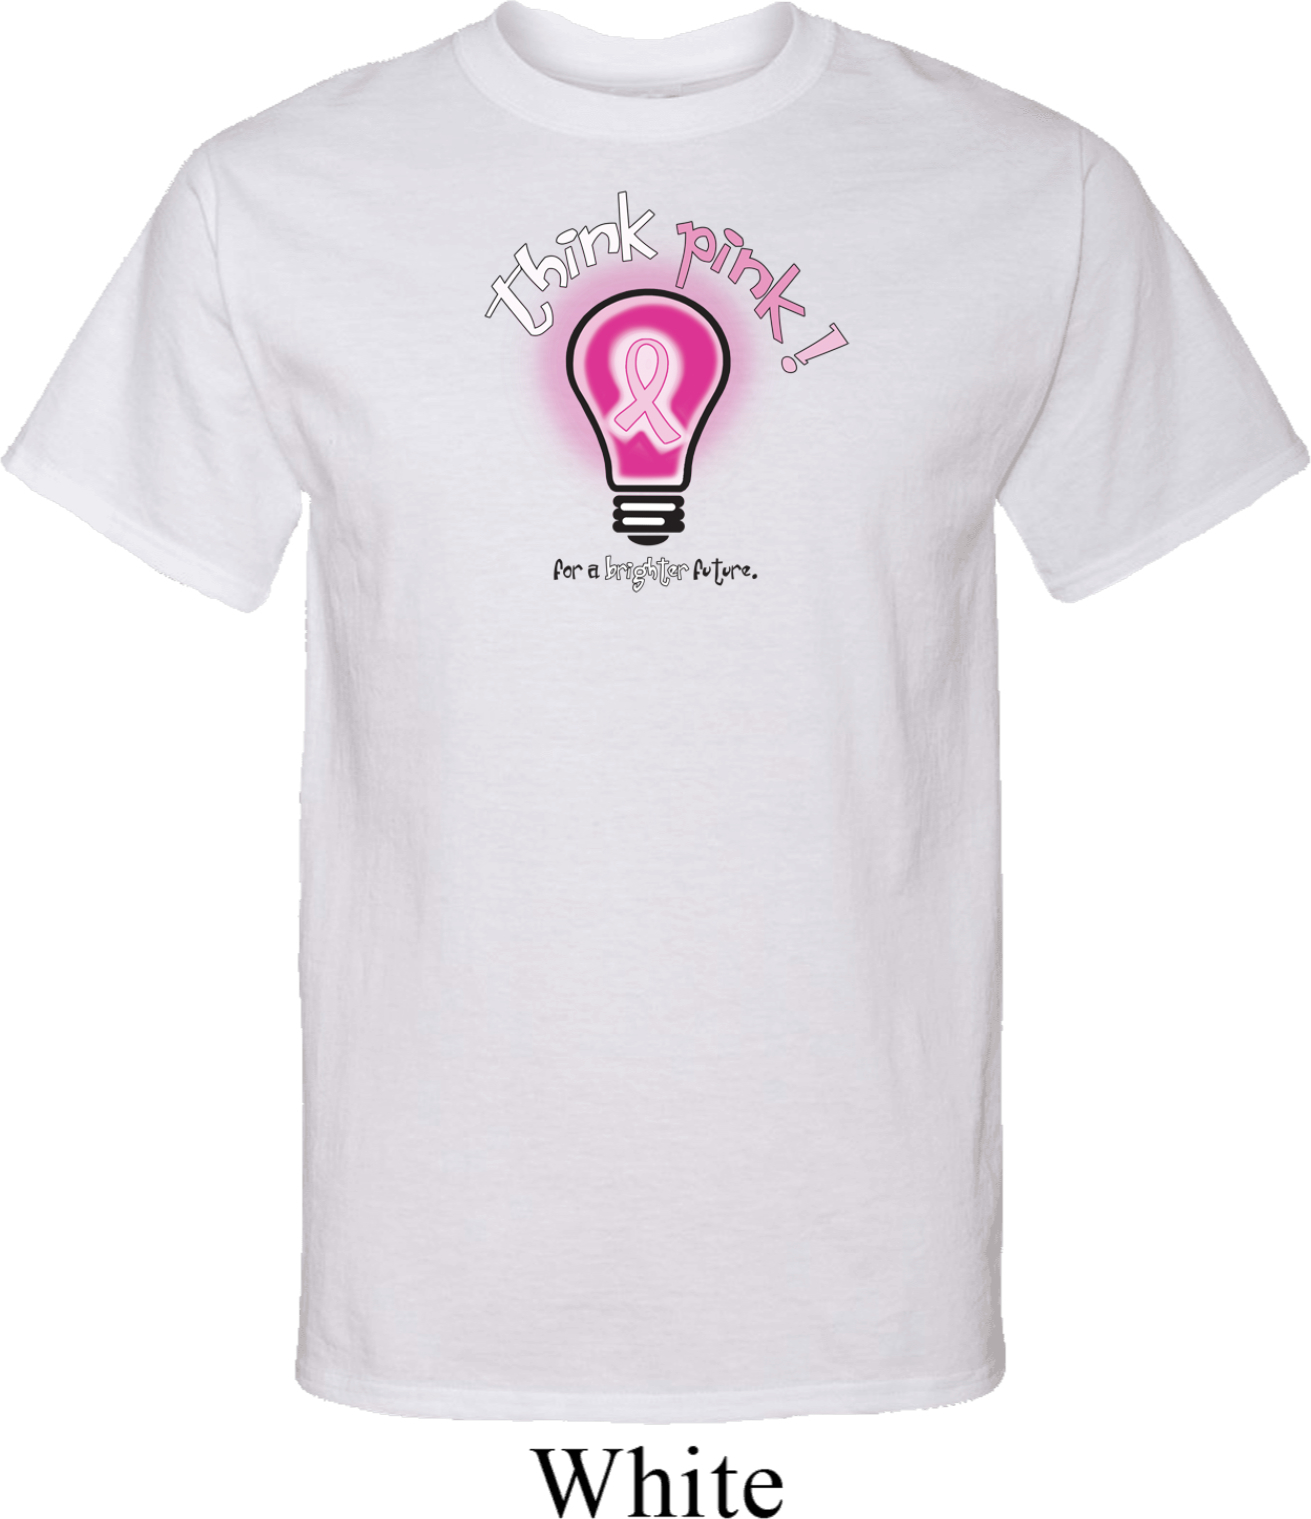 Think, that T shirts for breast cancer awareness amusing message